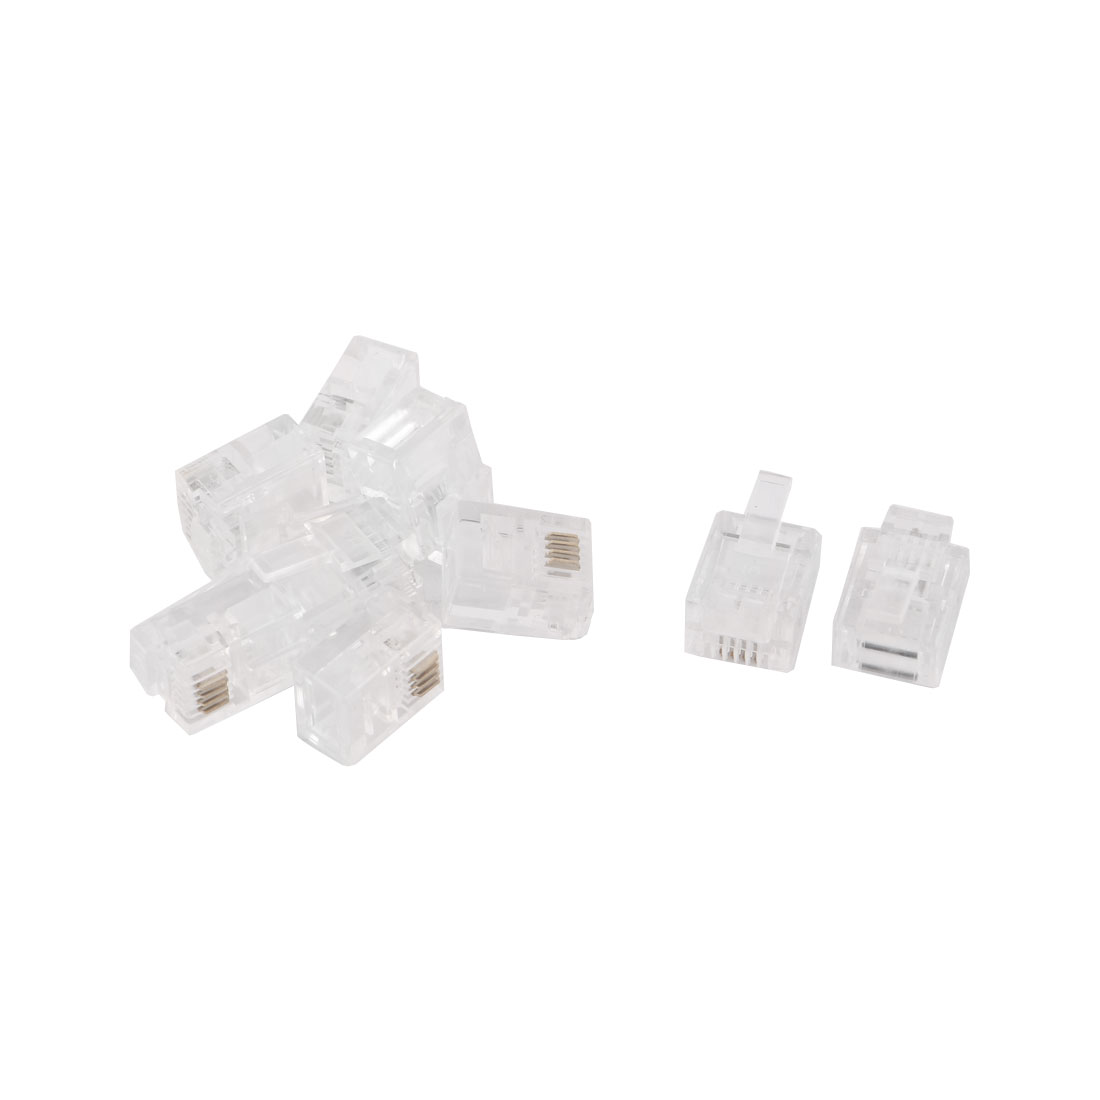 RJ11 6P4C Cat3 Stranded Wire Network Lan Jack Modular Connector Head Clear 9pcs